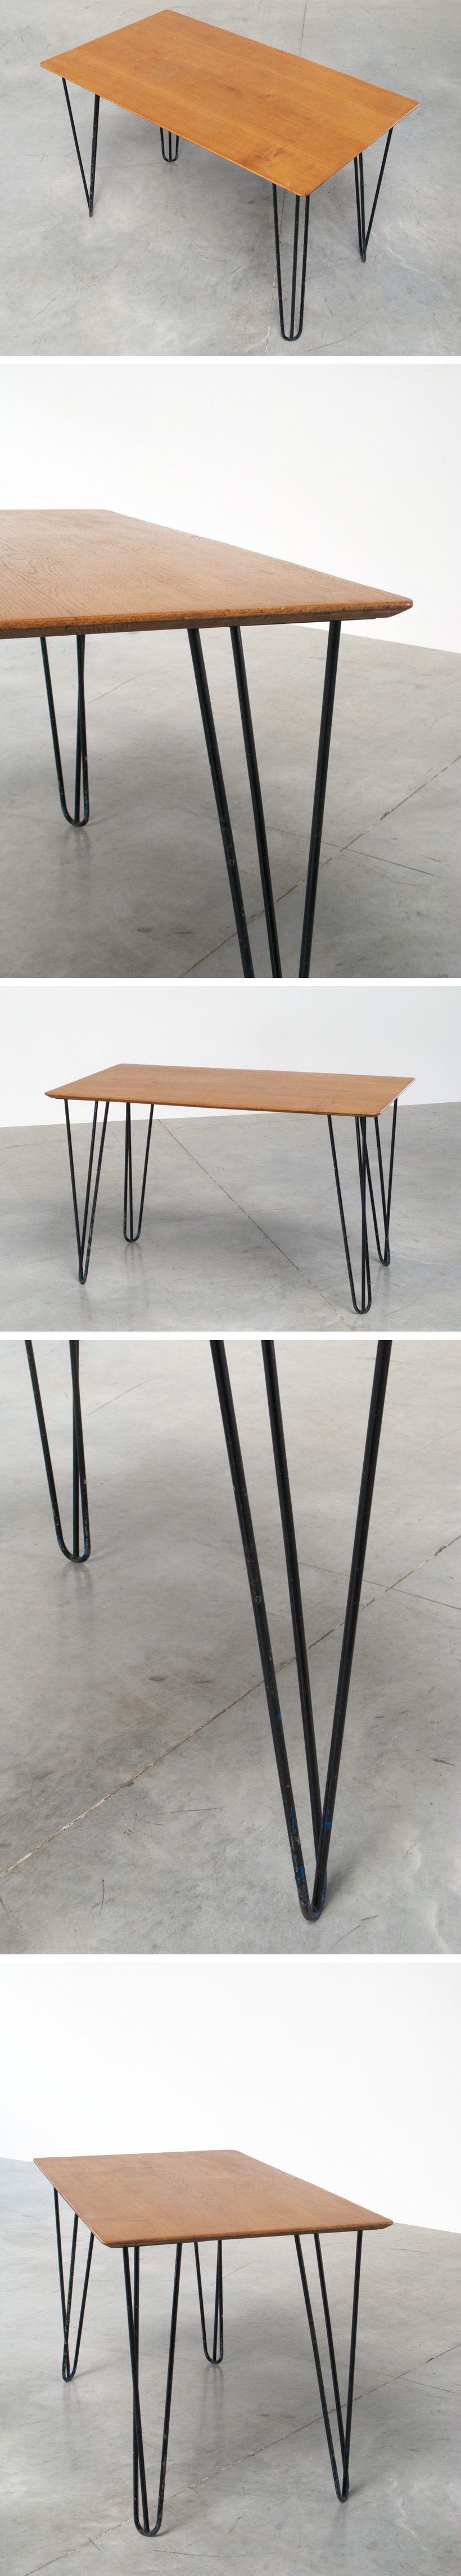 Kitchen table or Desk with Hairpin legs Large